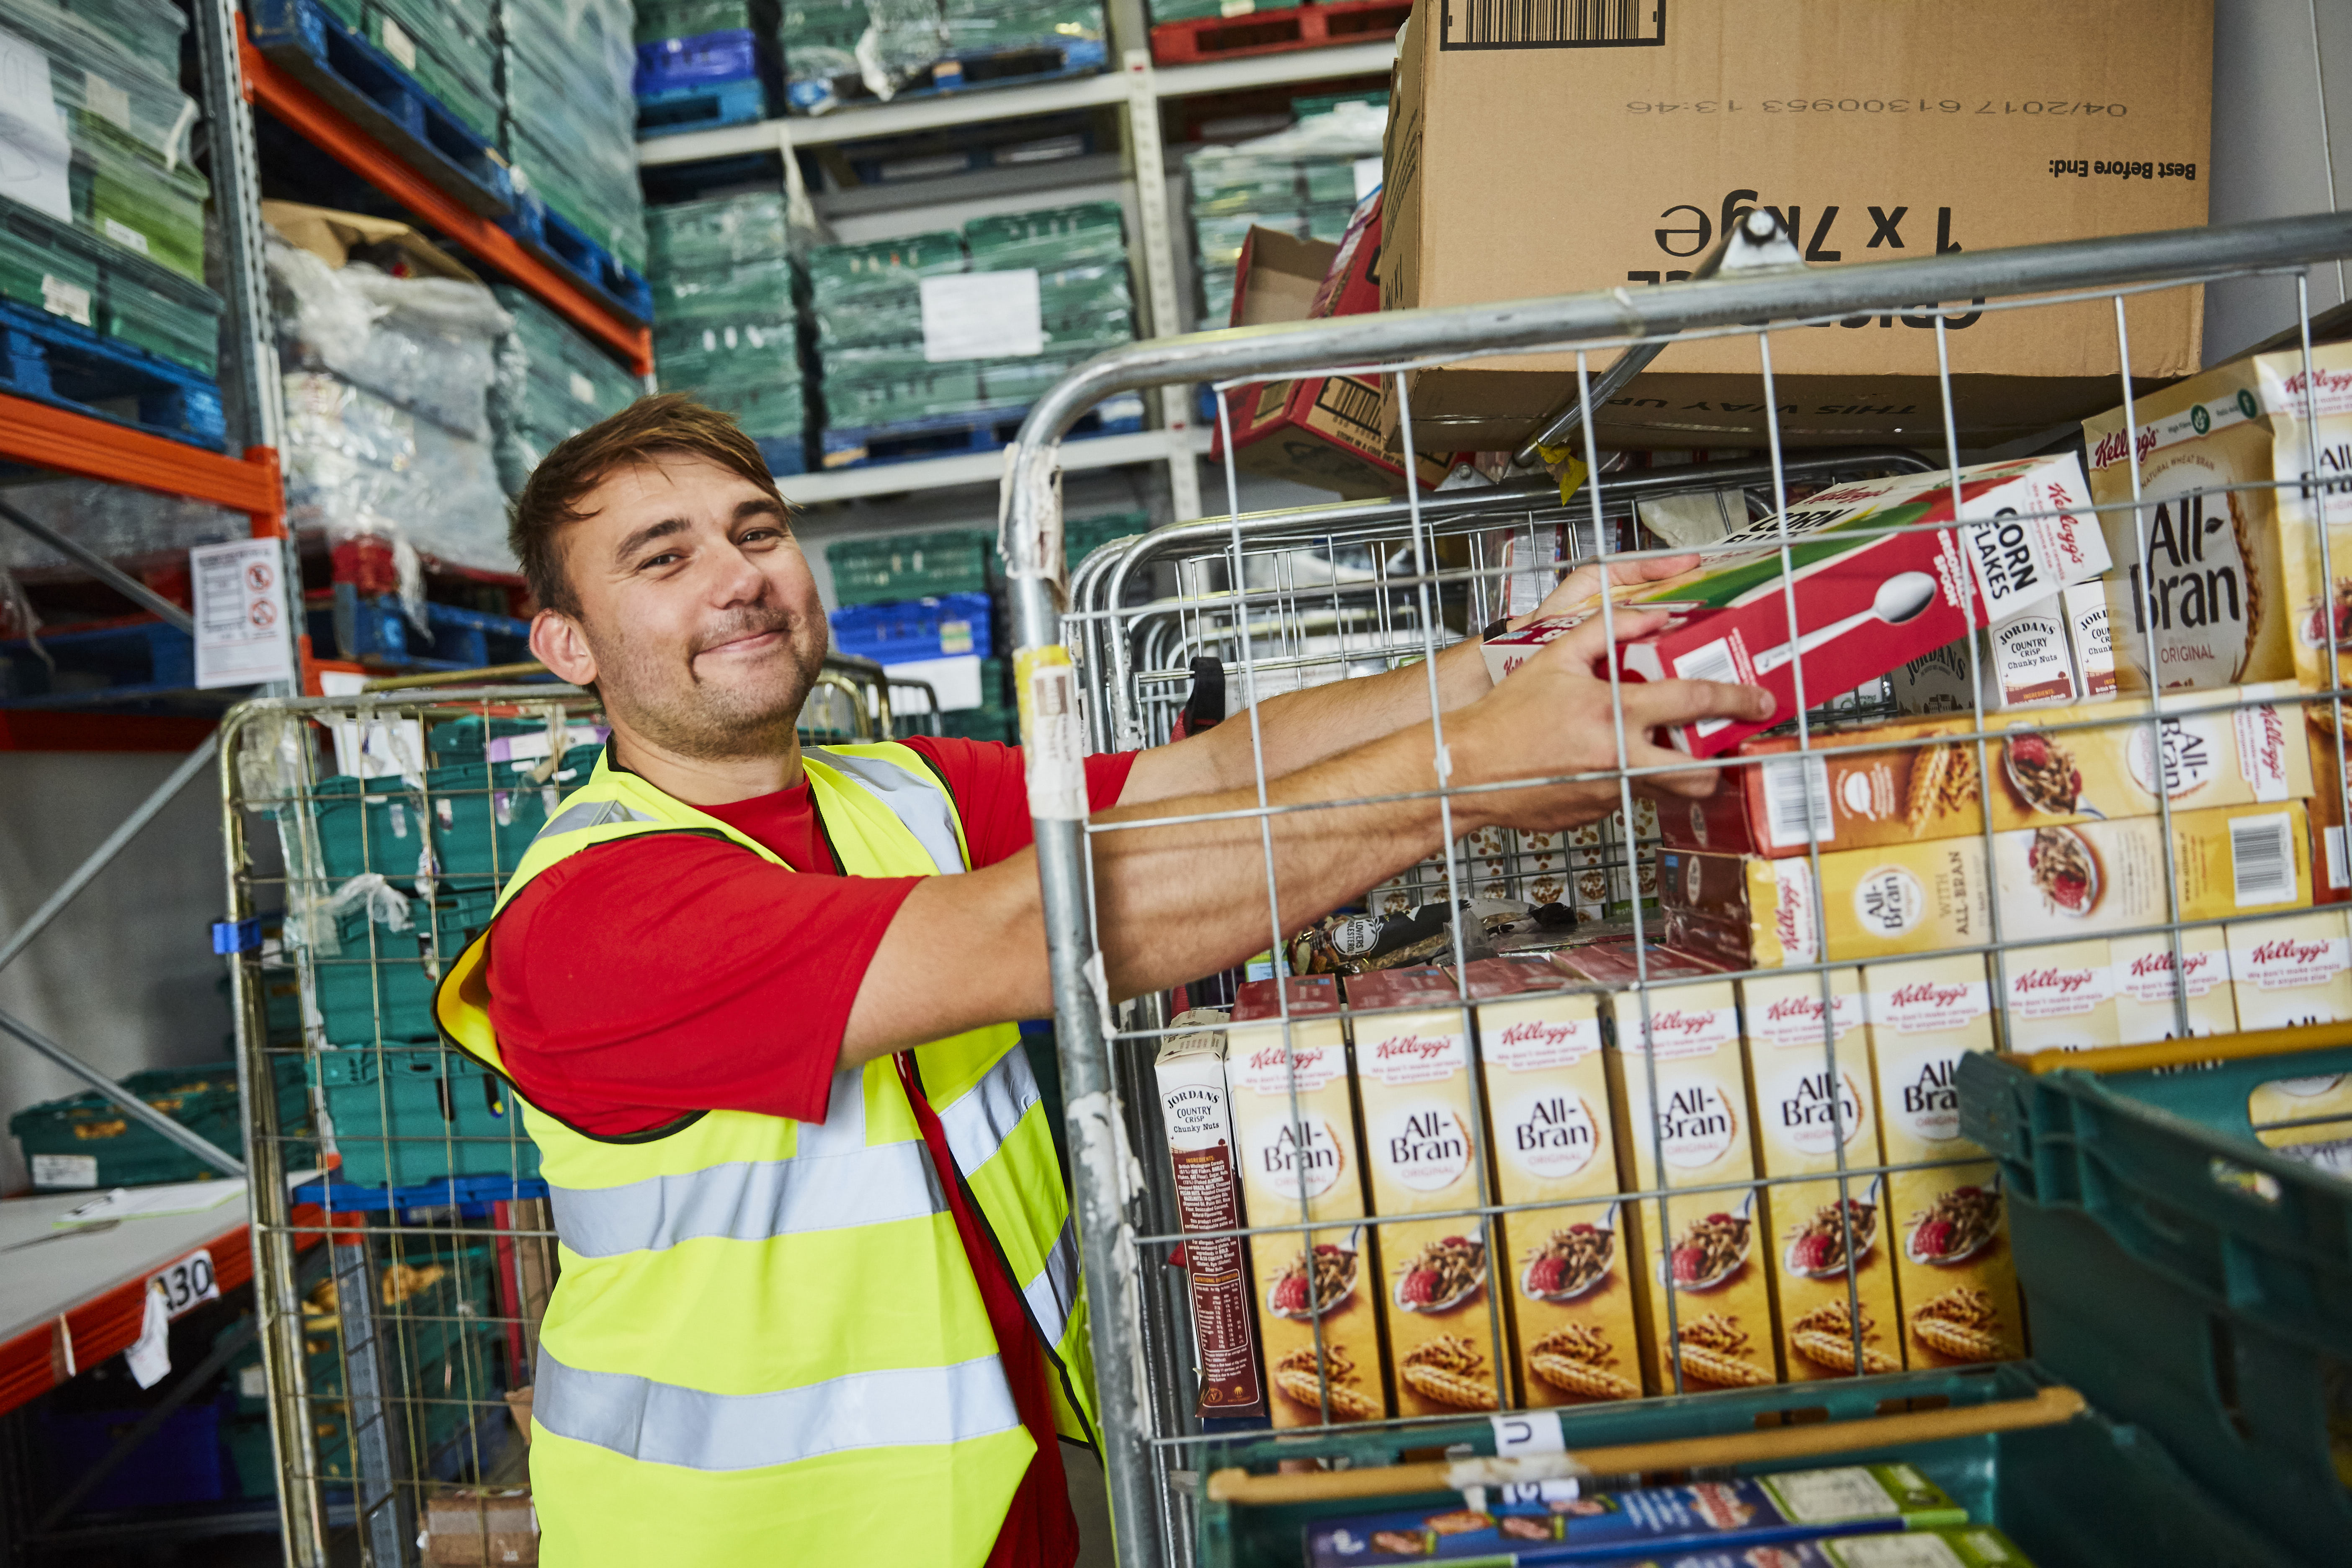 Kellogg's volunteer at FareShare Kent